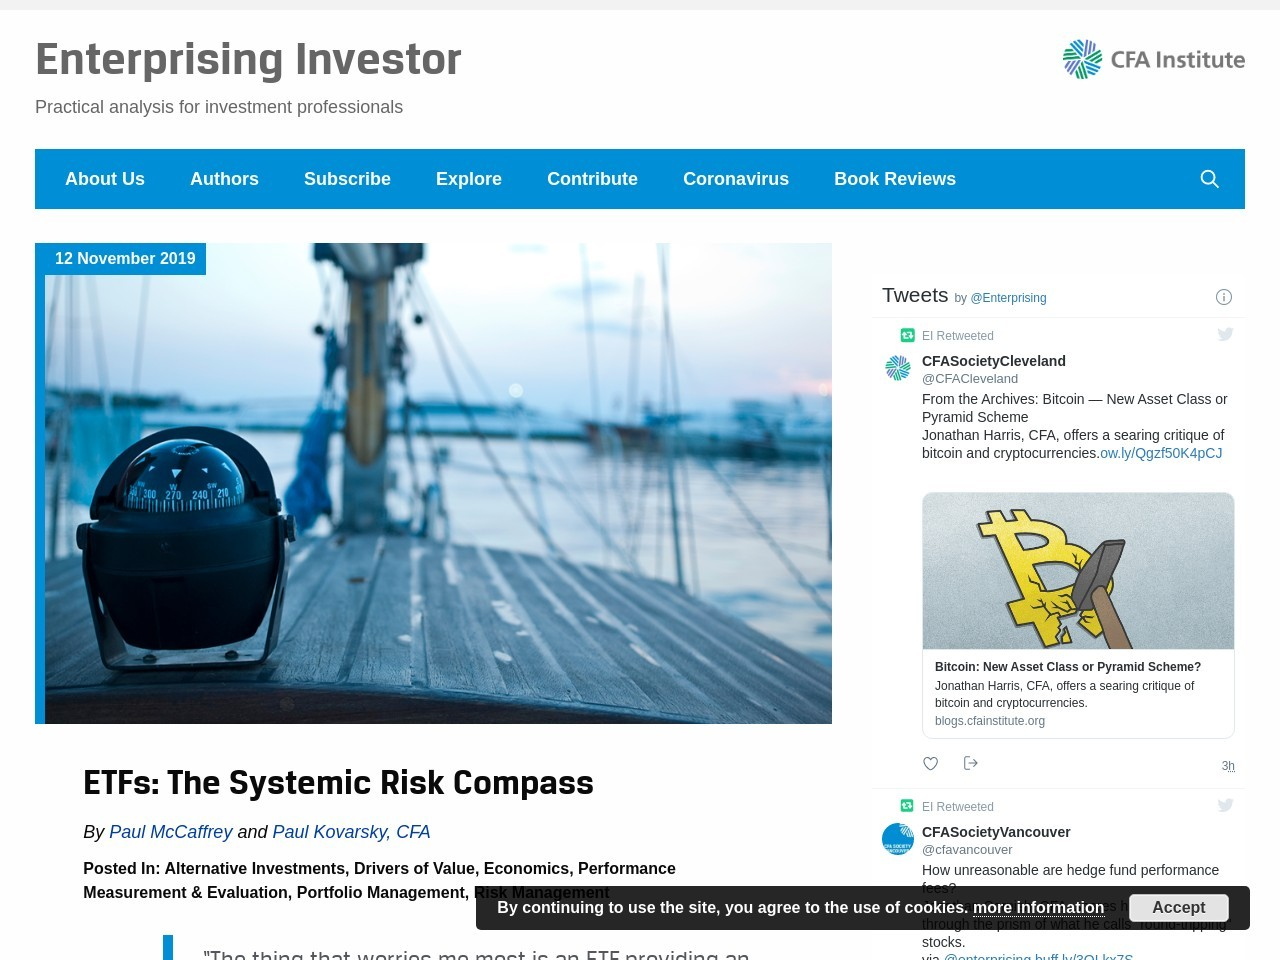 ETFs: The Systemic Risk Compass